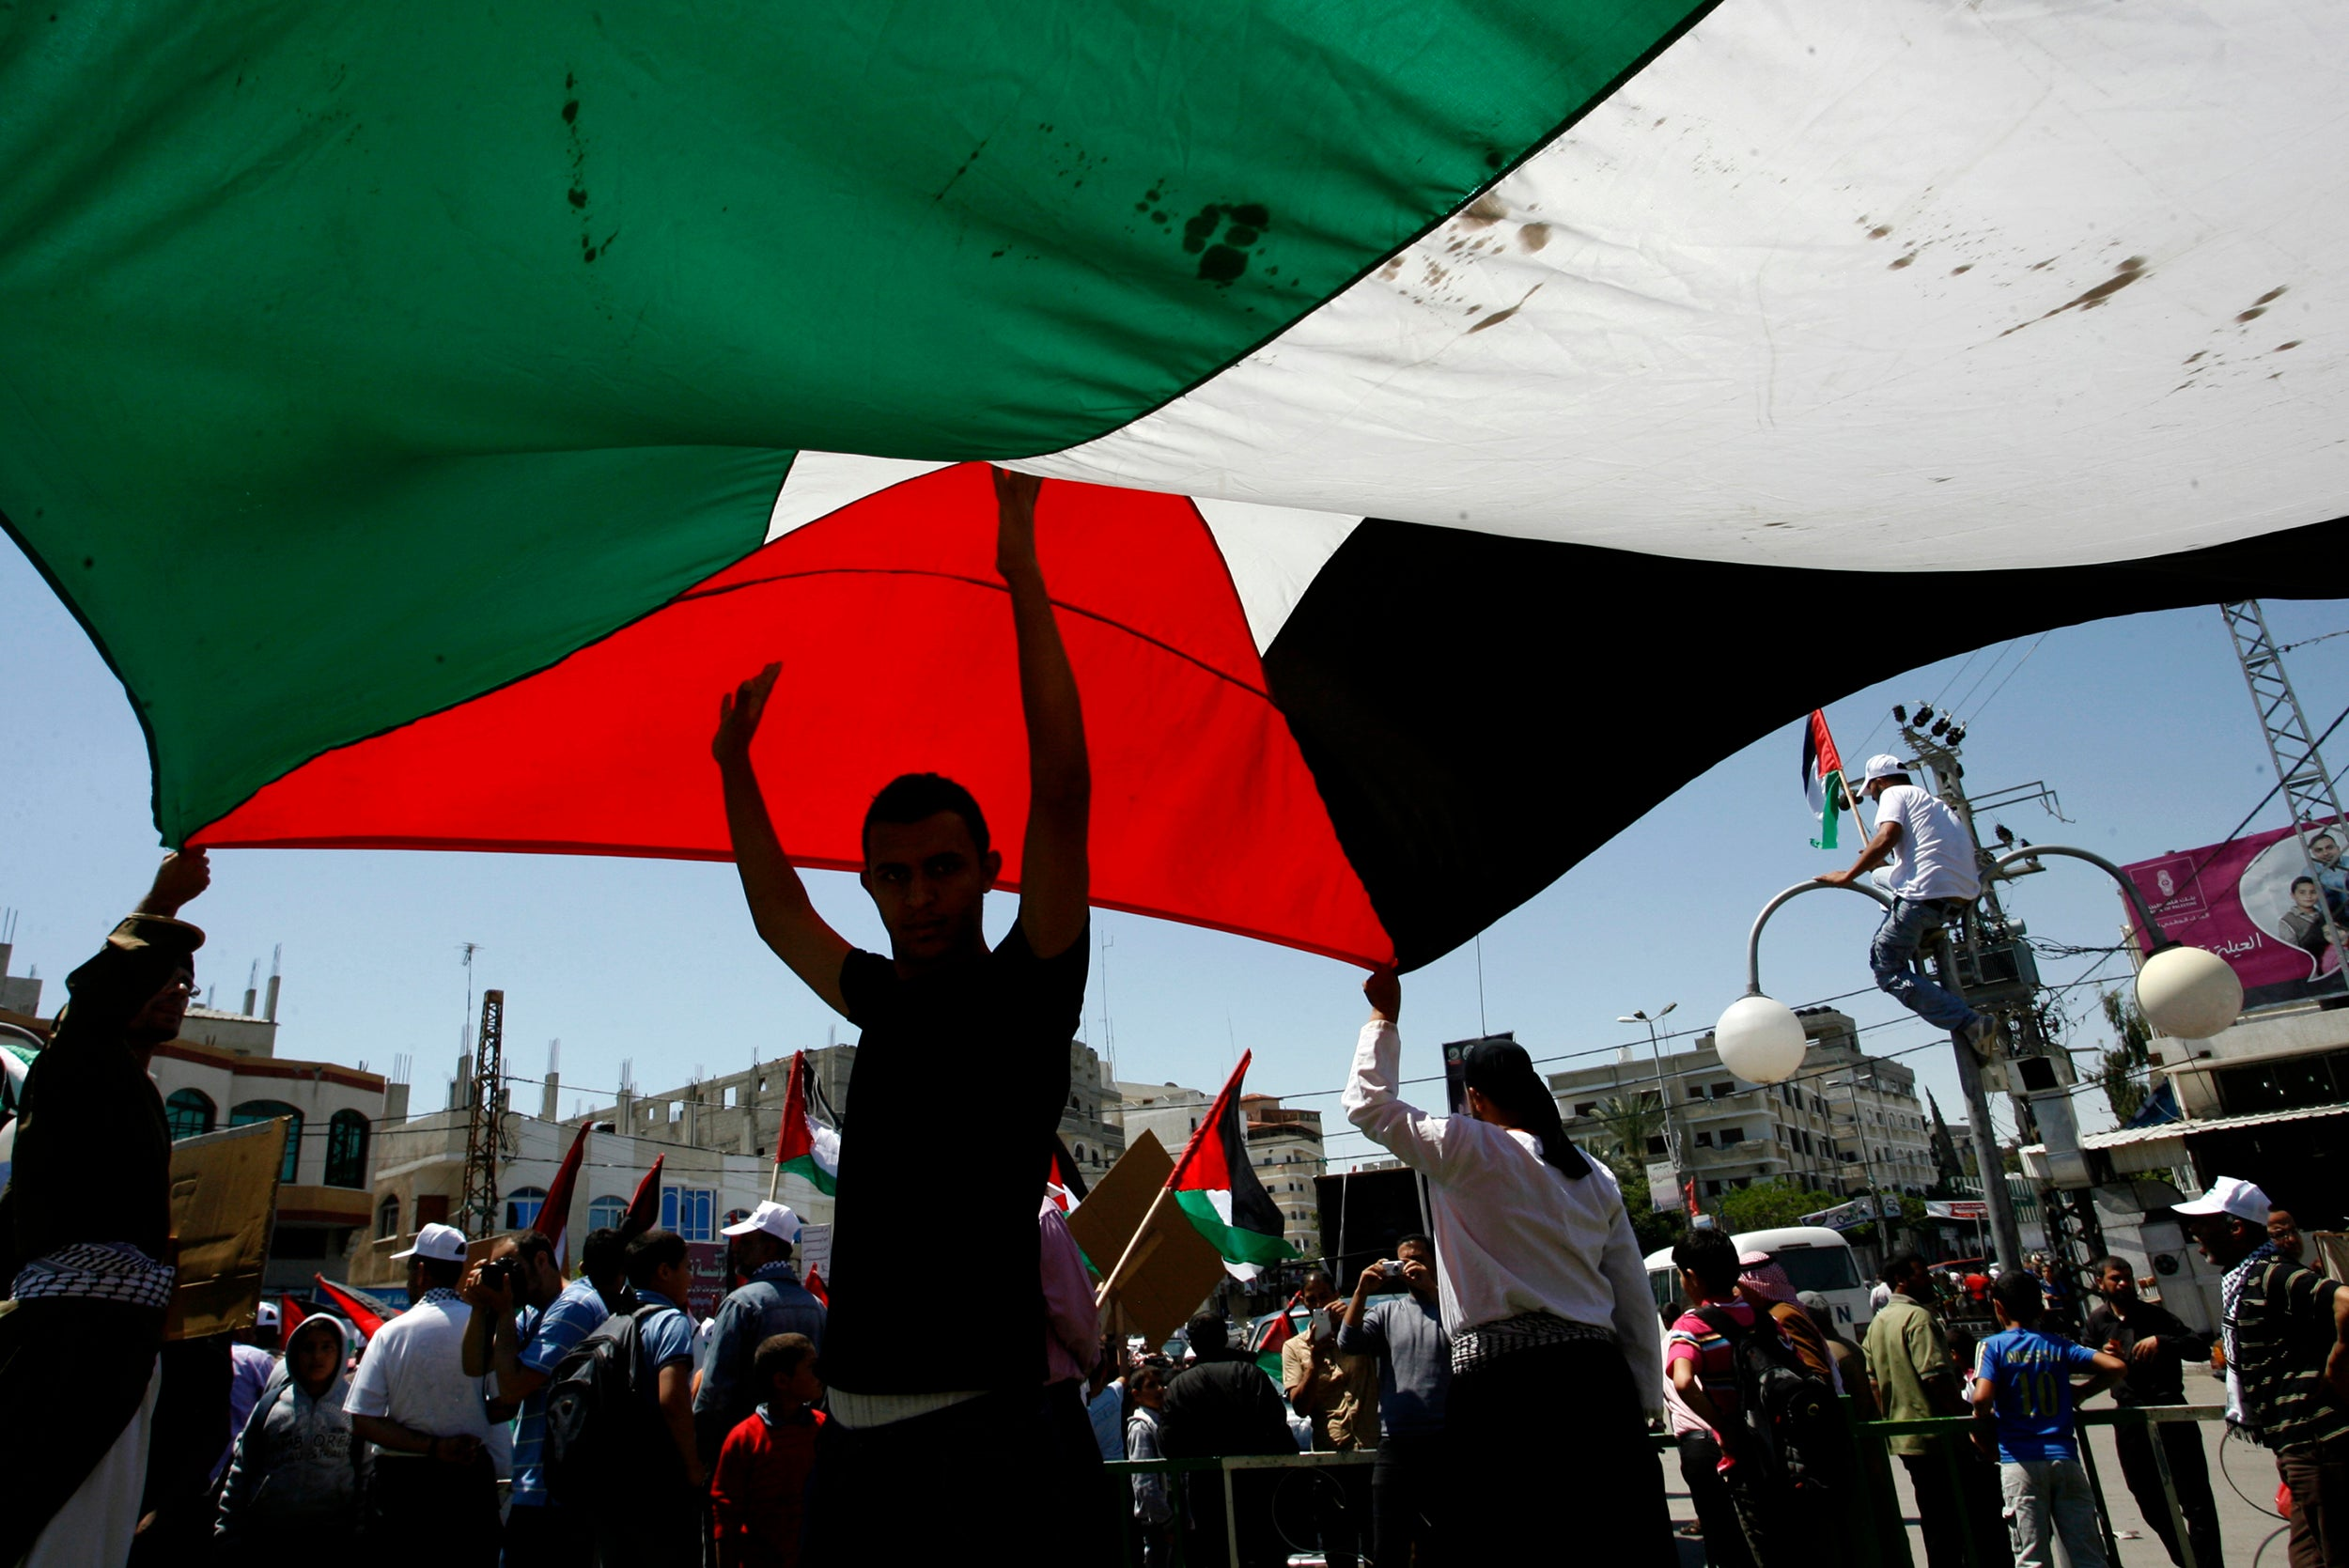 Israel at 70: 'Why I have to tell the story of the Palestinian struggle to return home'